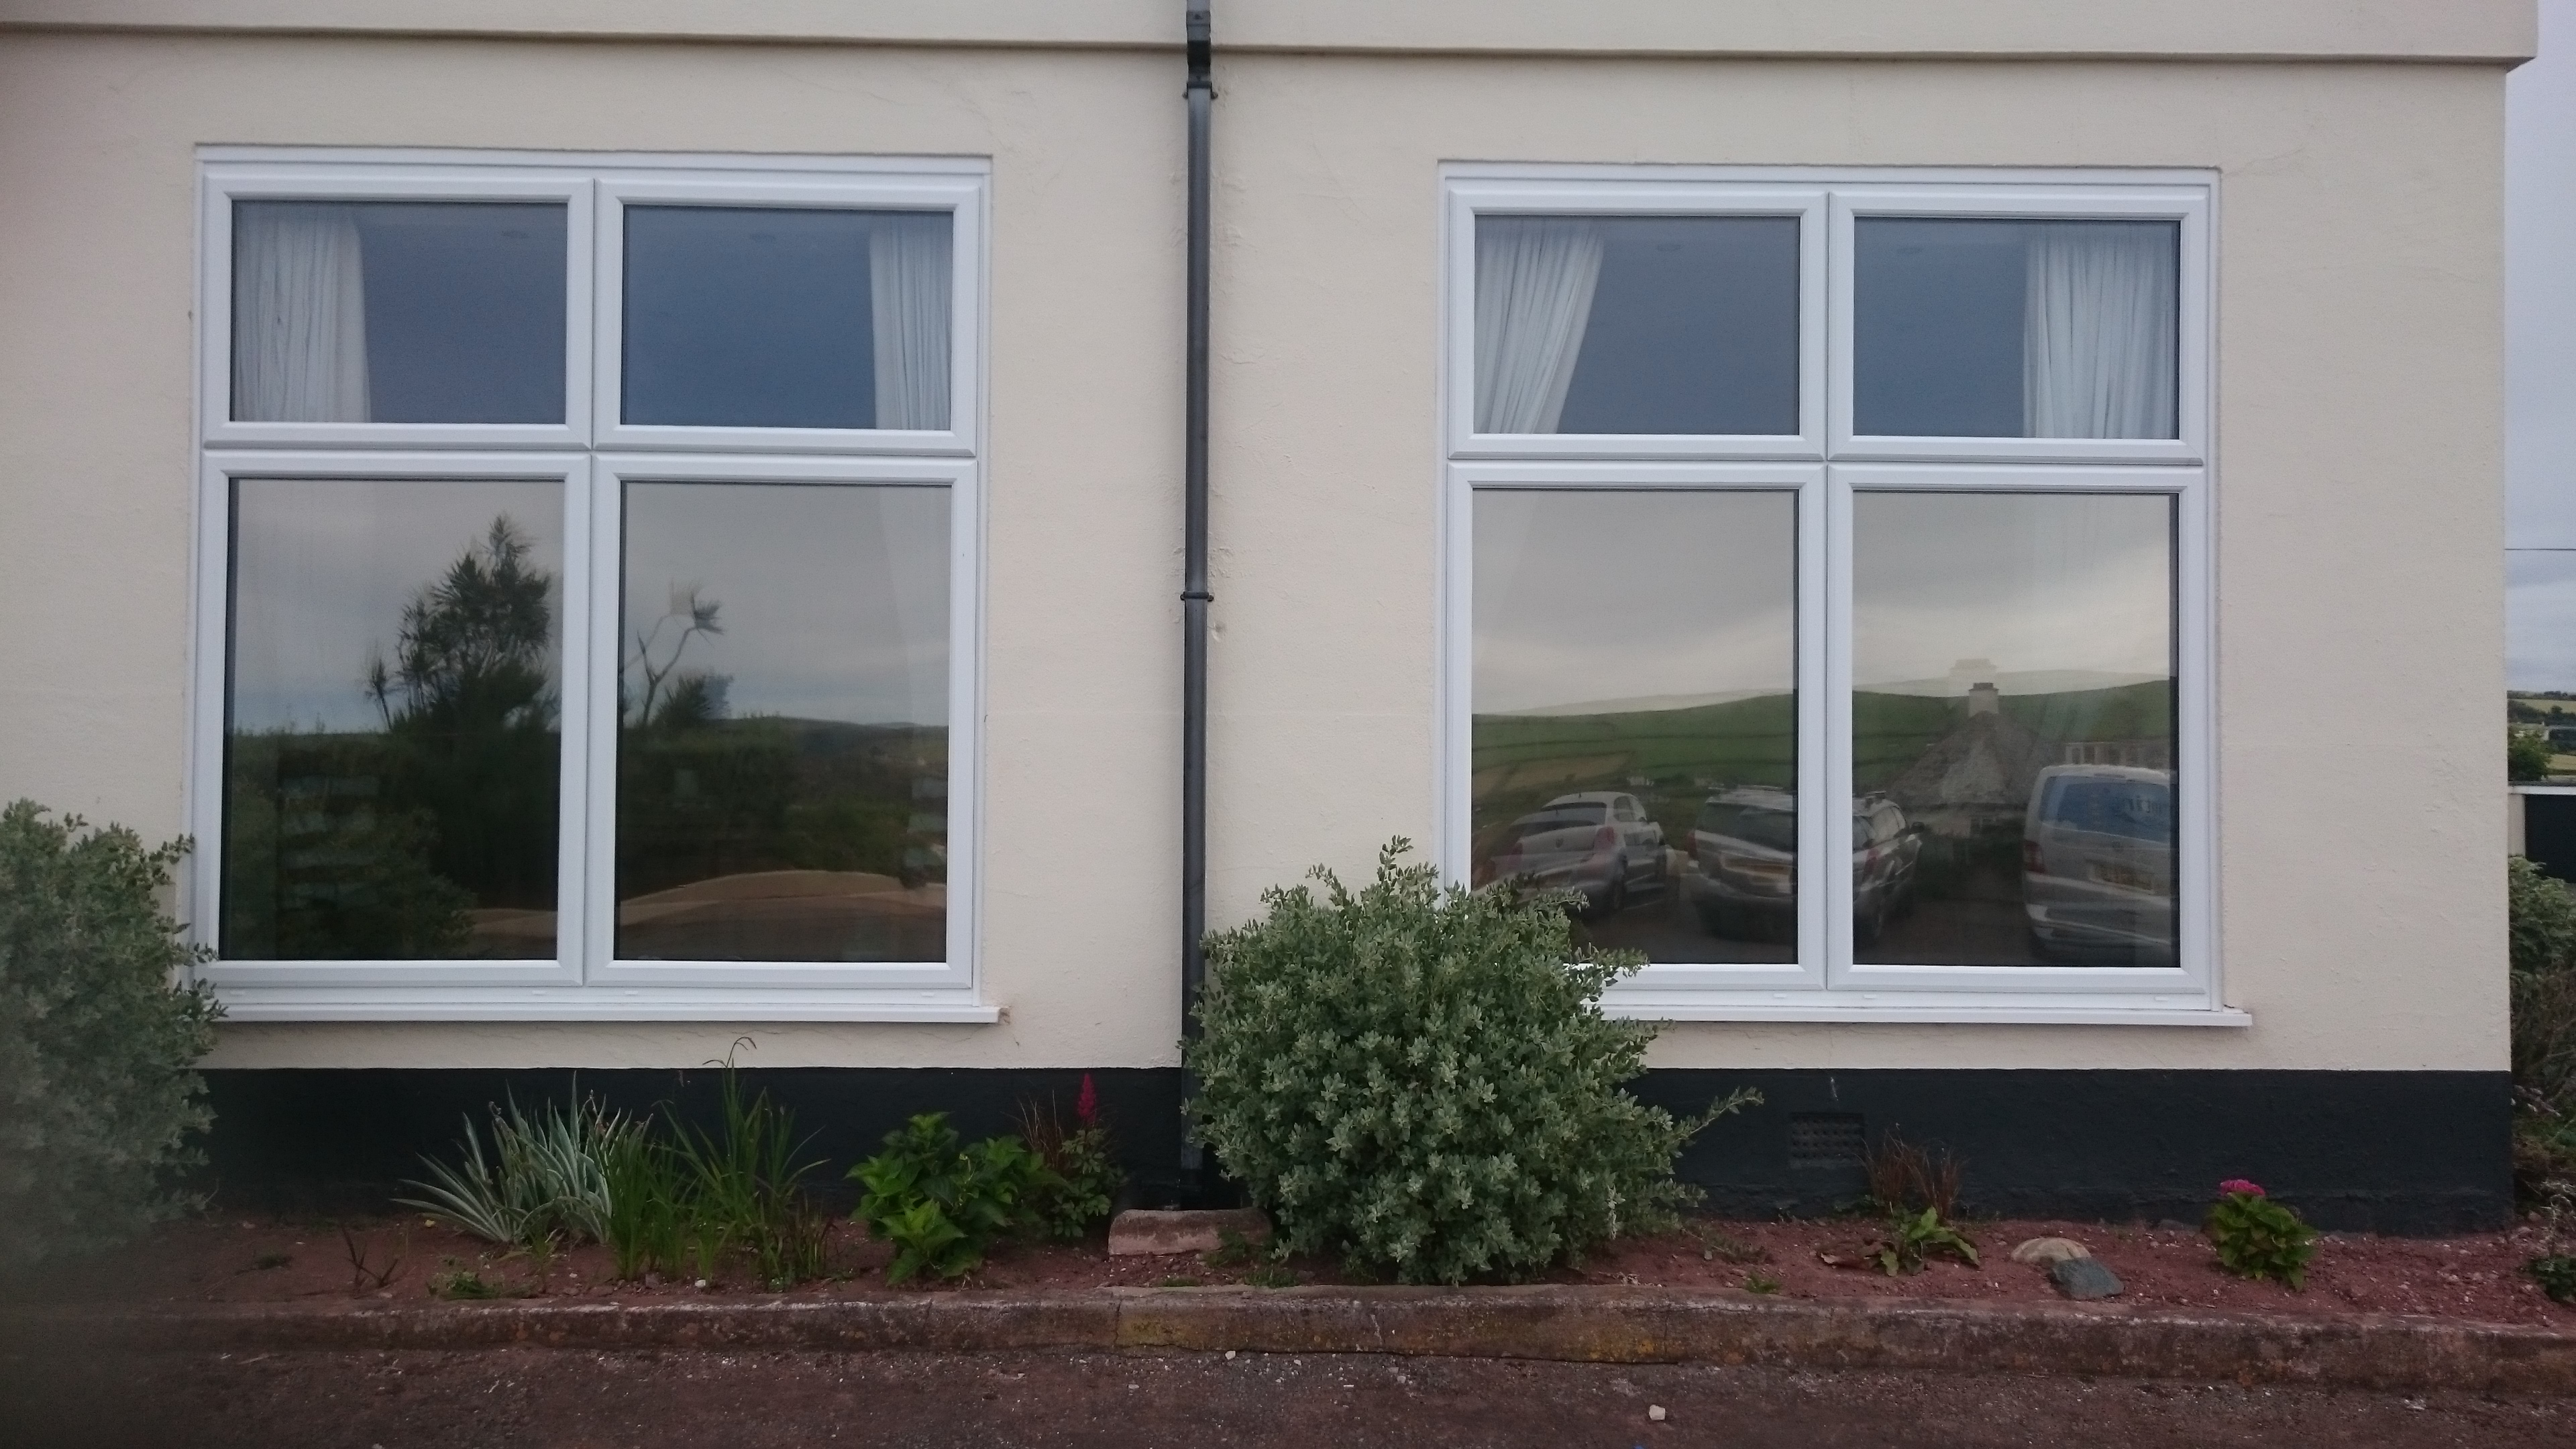 Lounge windows Natural 50 solar window film. Thurlestone Devon. Tinting Express Ltd